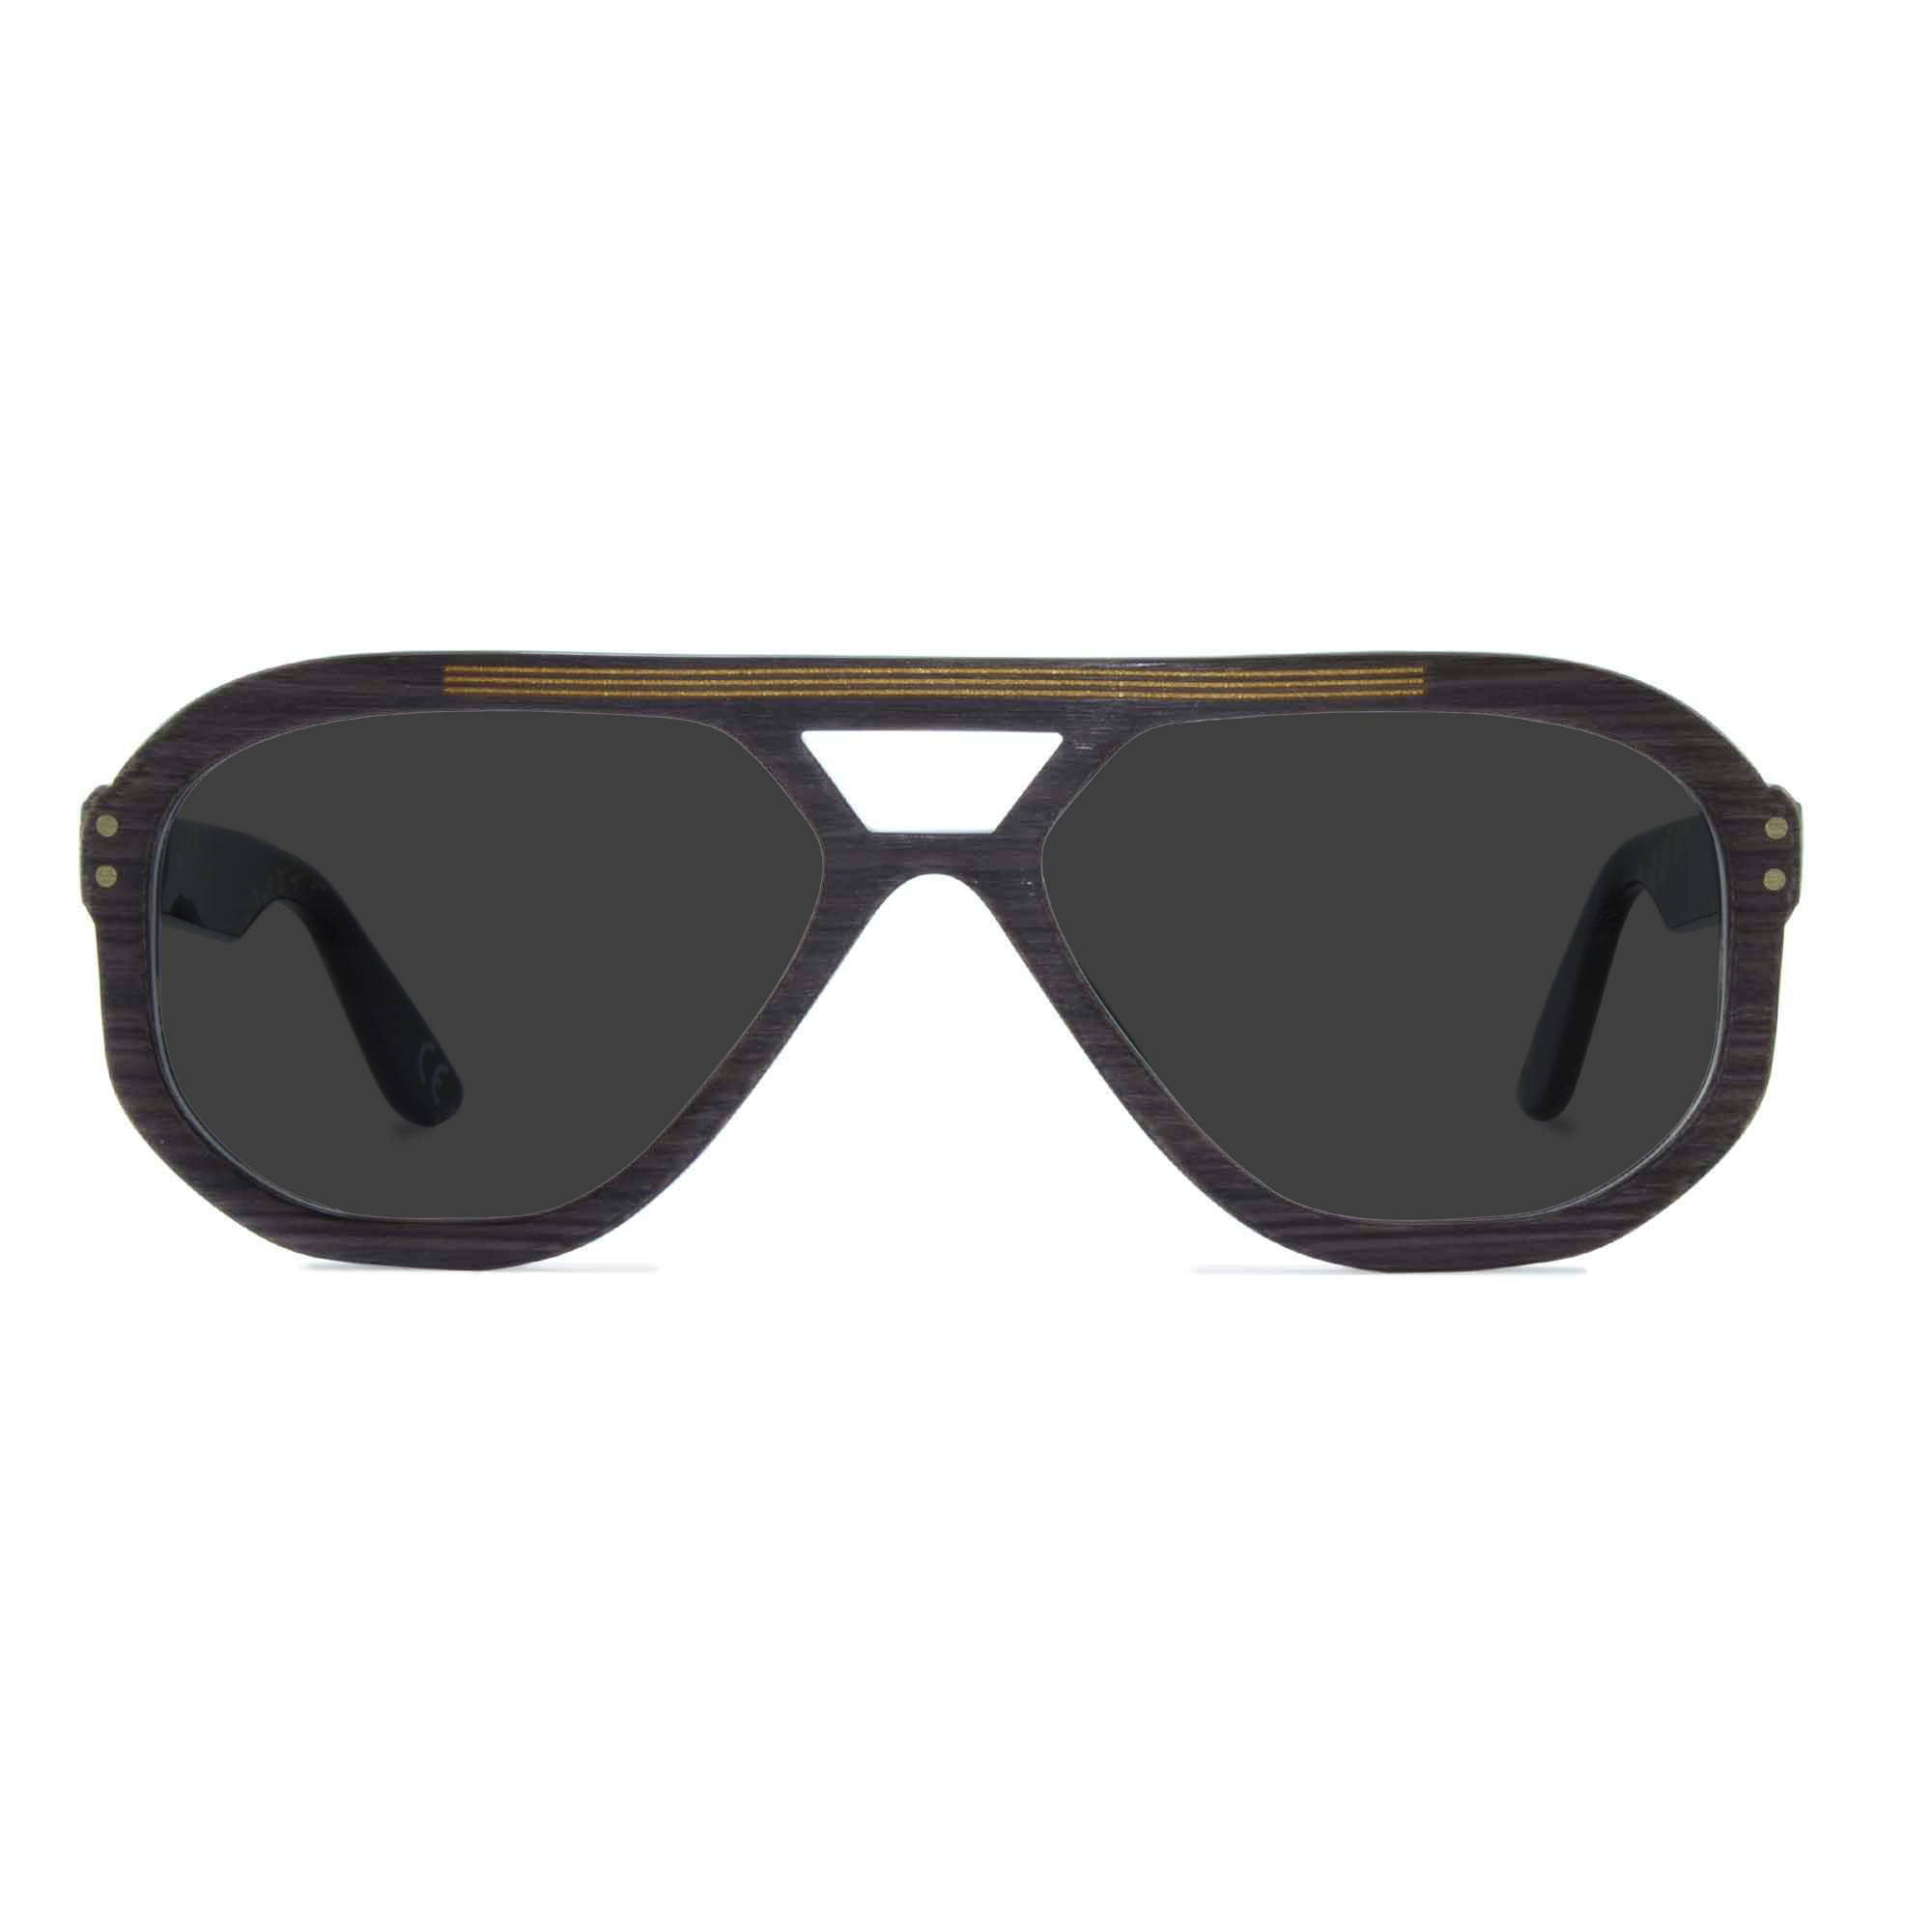 Joiuss jim dark wood navigator sunglasses